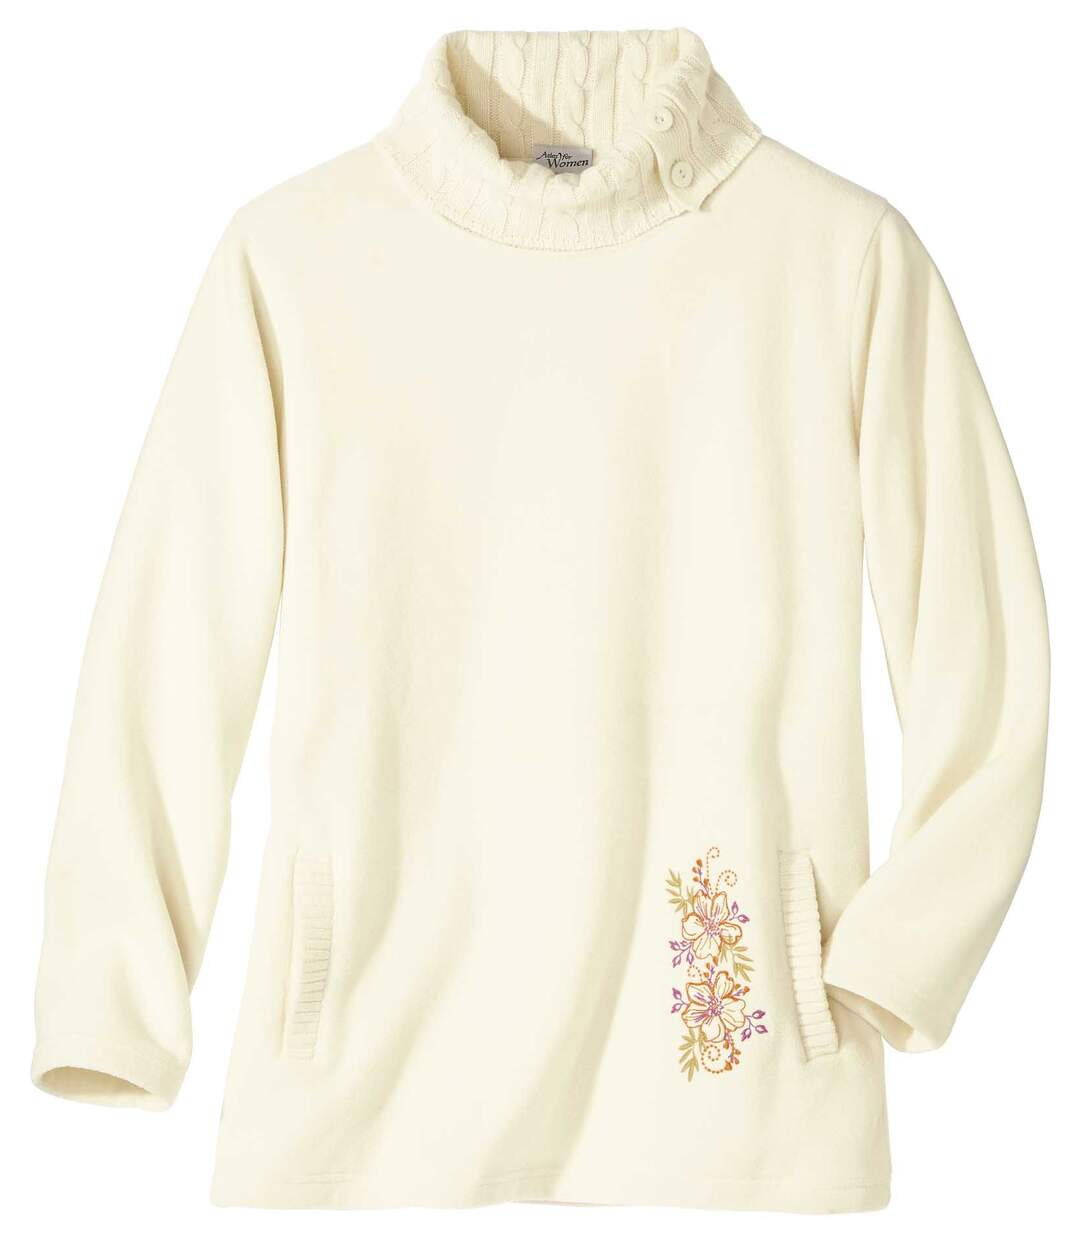 Women's Cream Fleece Jumper - Knitted Roll Neck